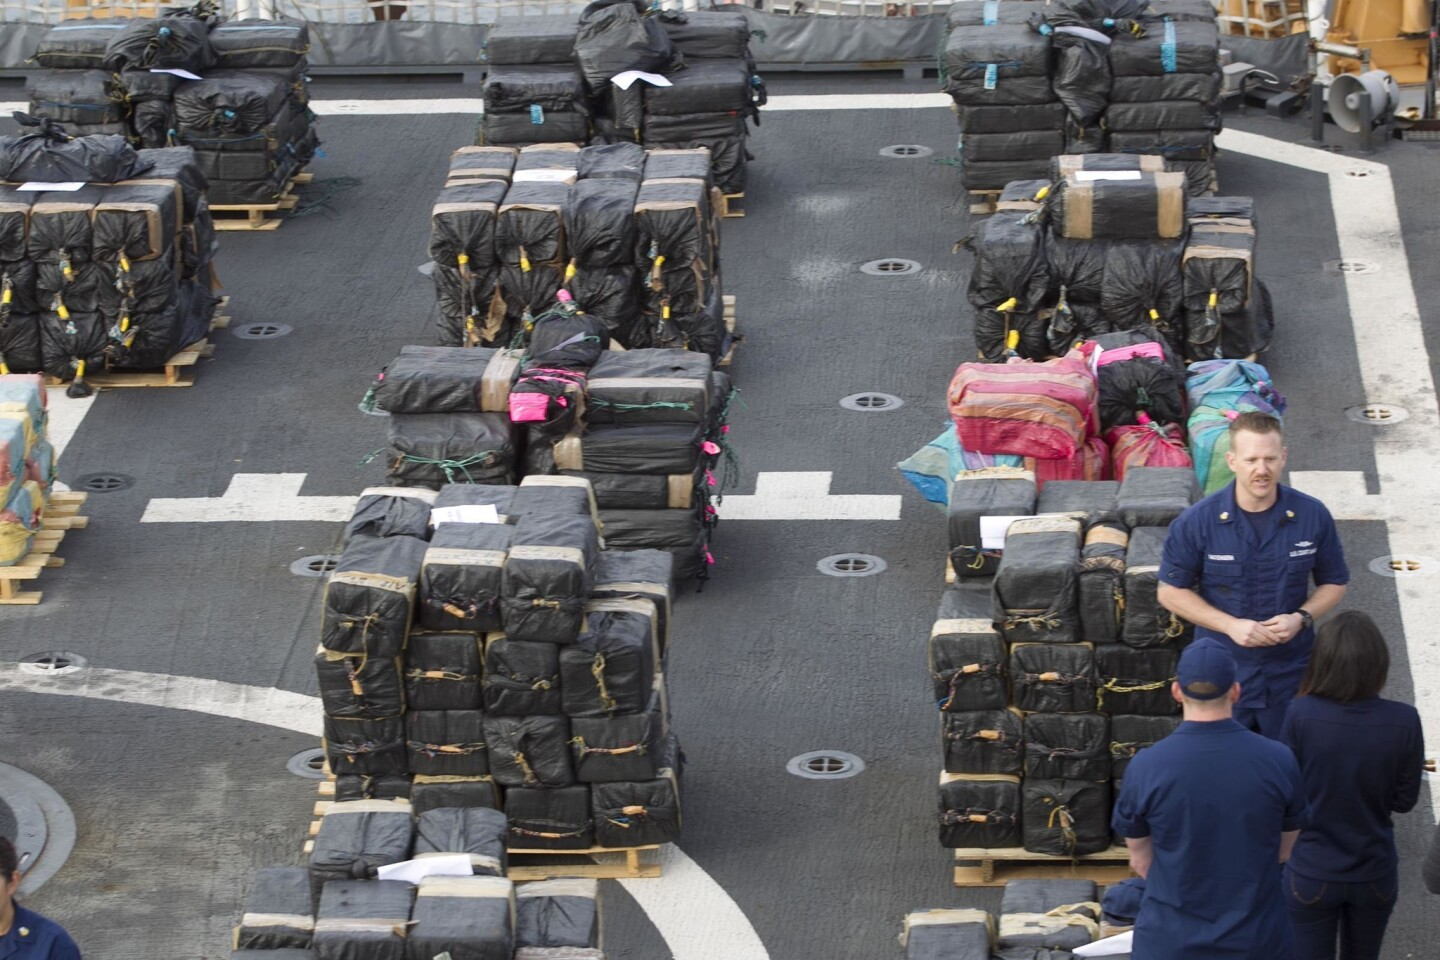 The flight deck of the USCG Cutter Stratton, which participated in the operation, had the drugs staged for unloading.